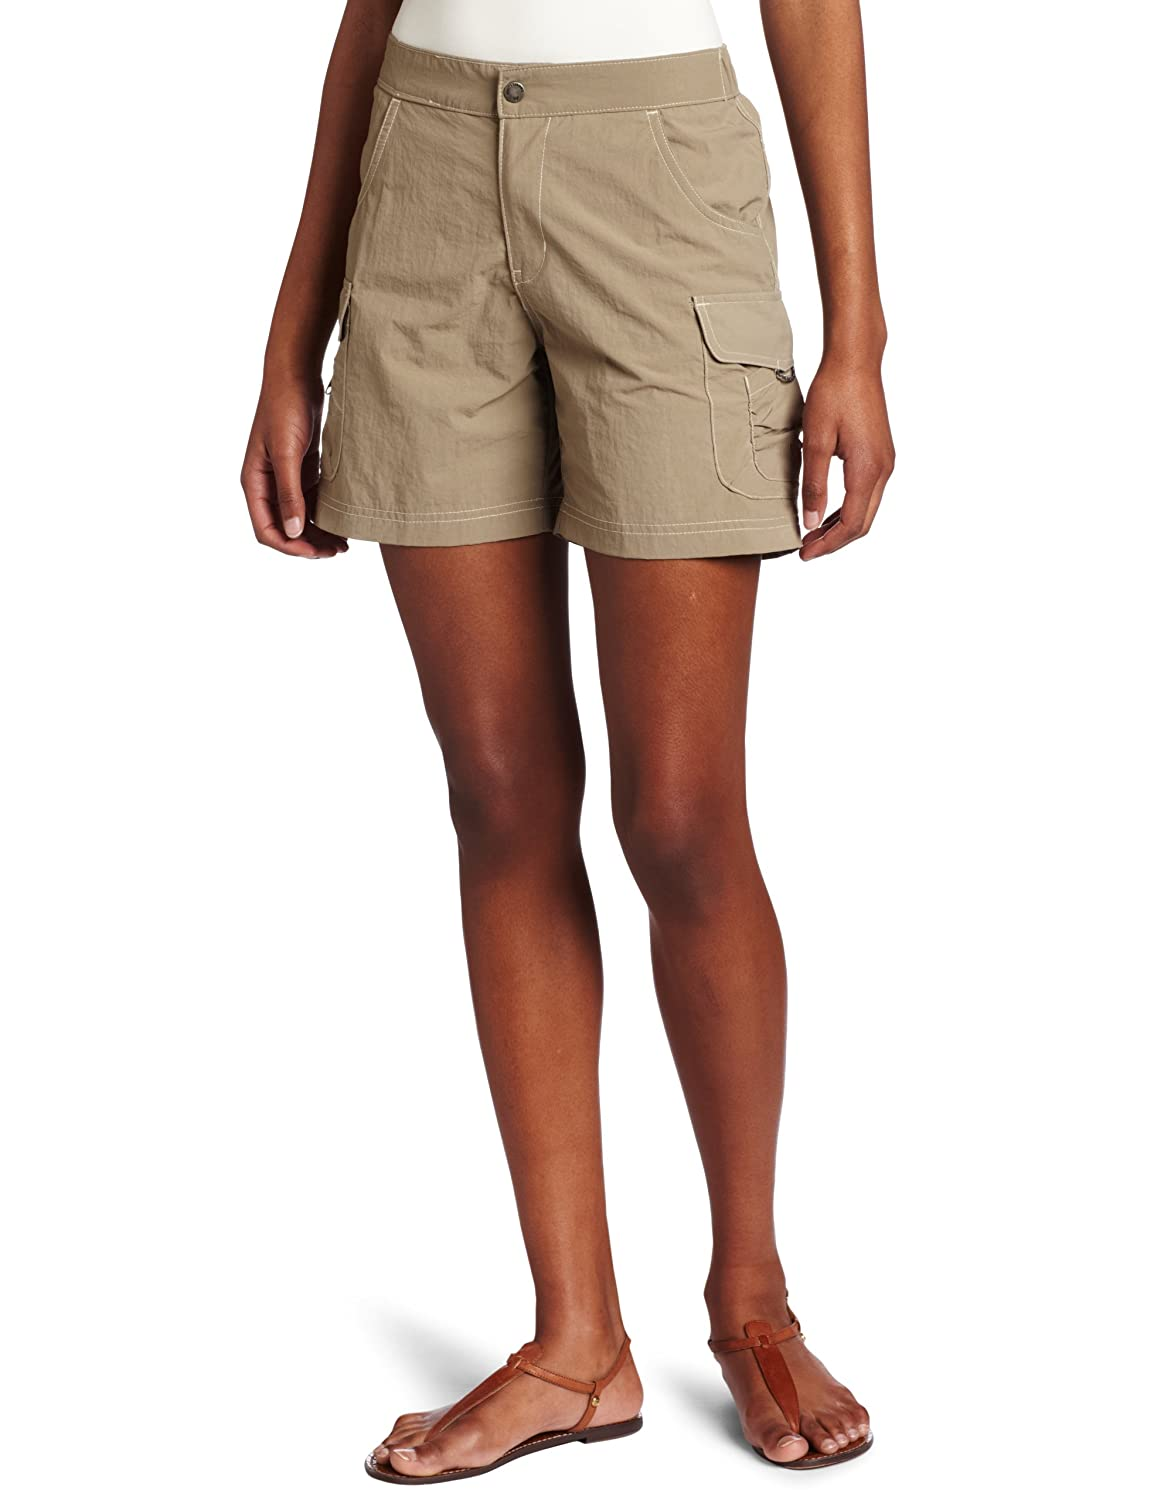 White Sierra Women's Crystal Cove River Shorts D5700W